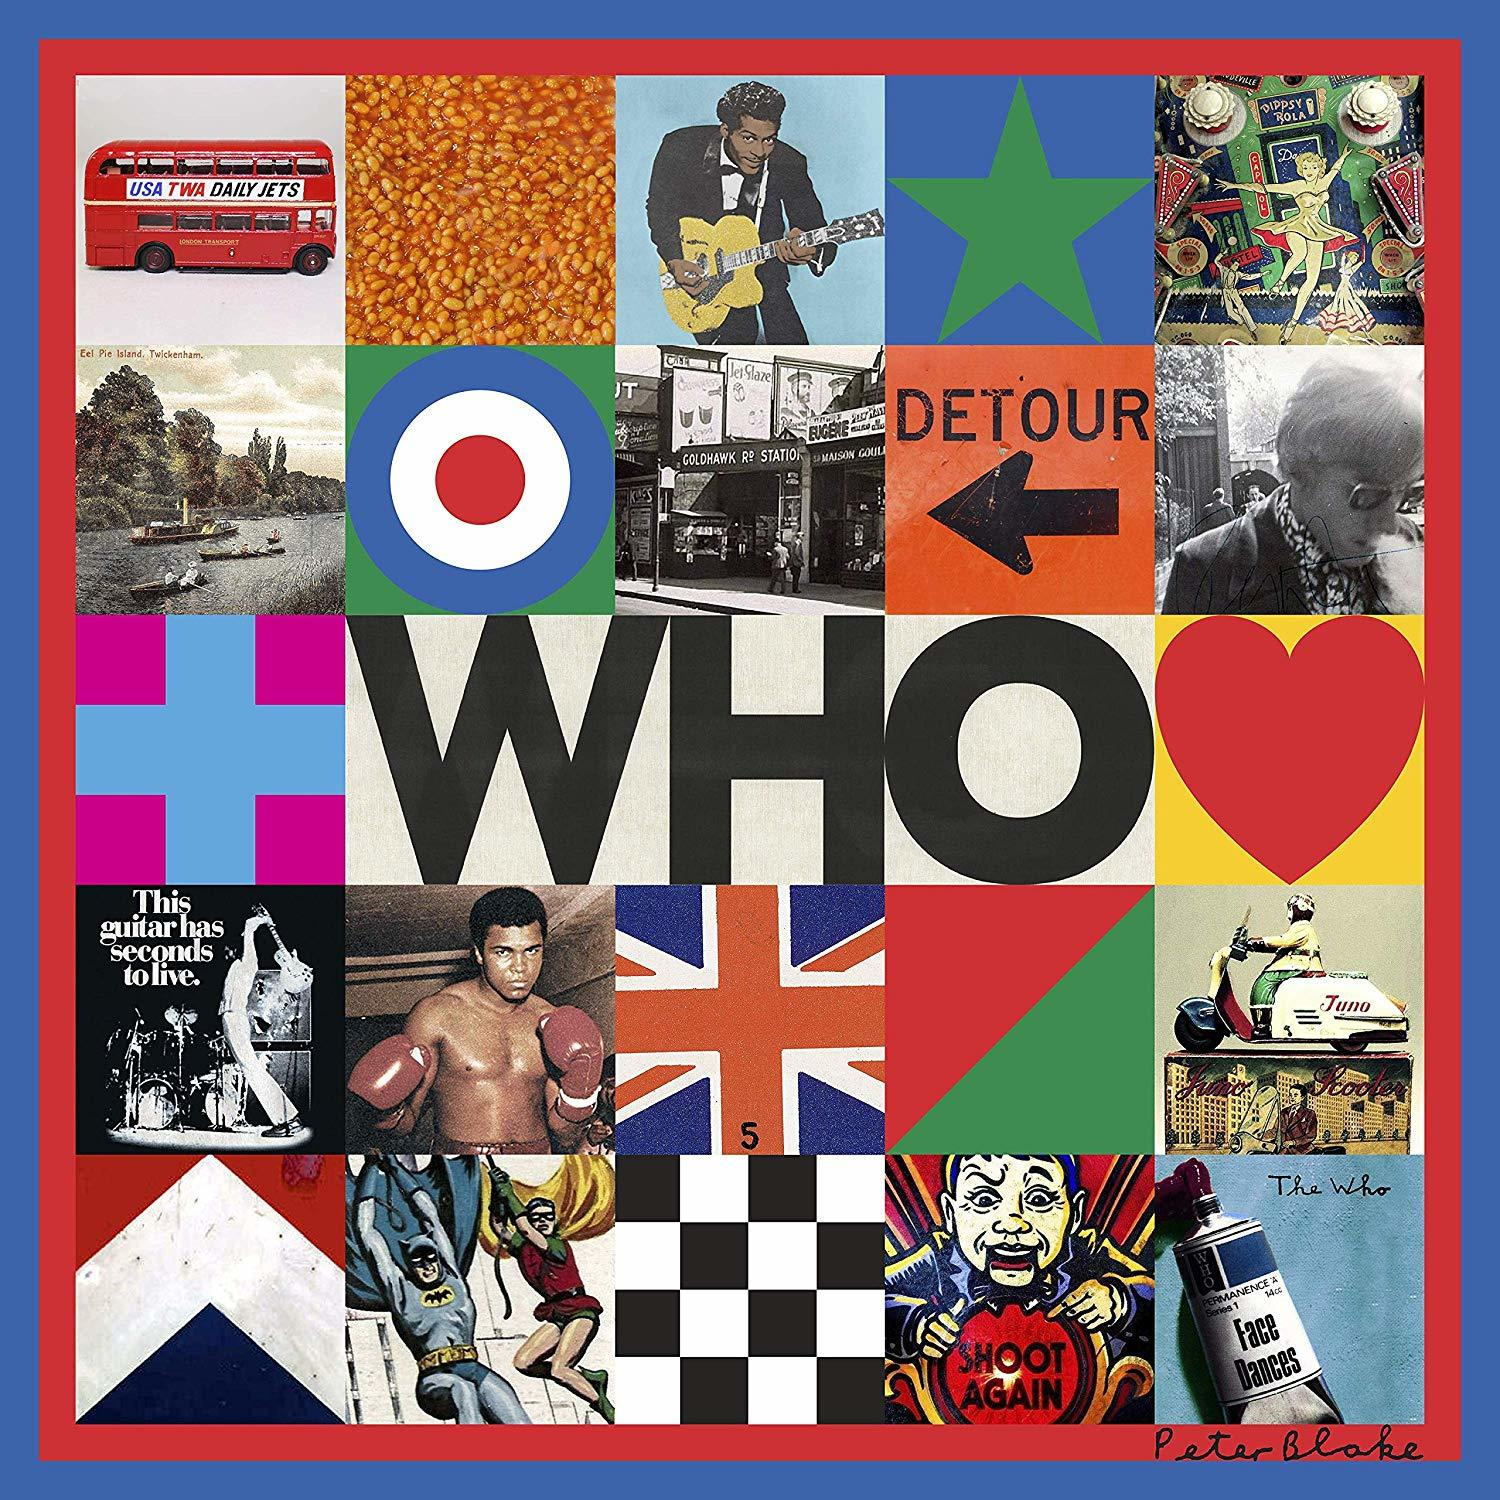 WHO, THE: Who